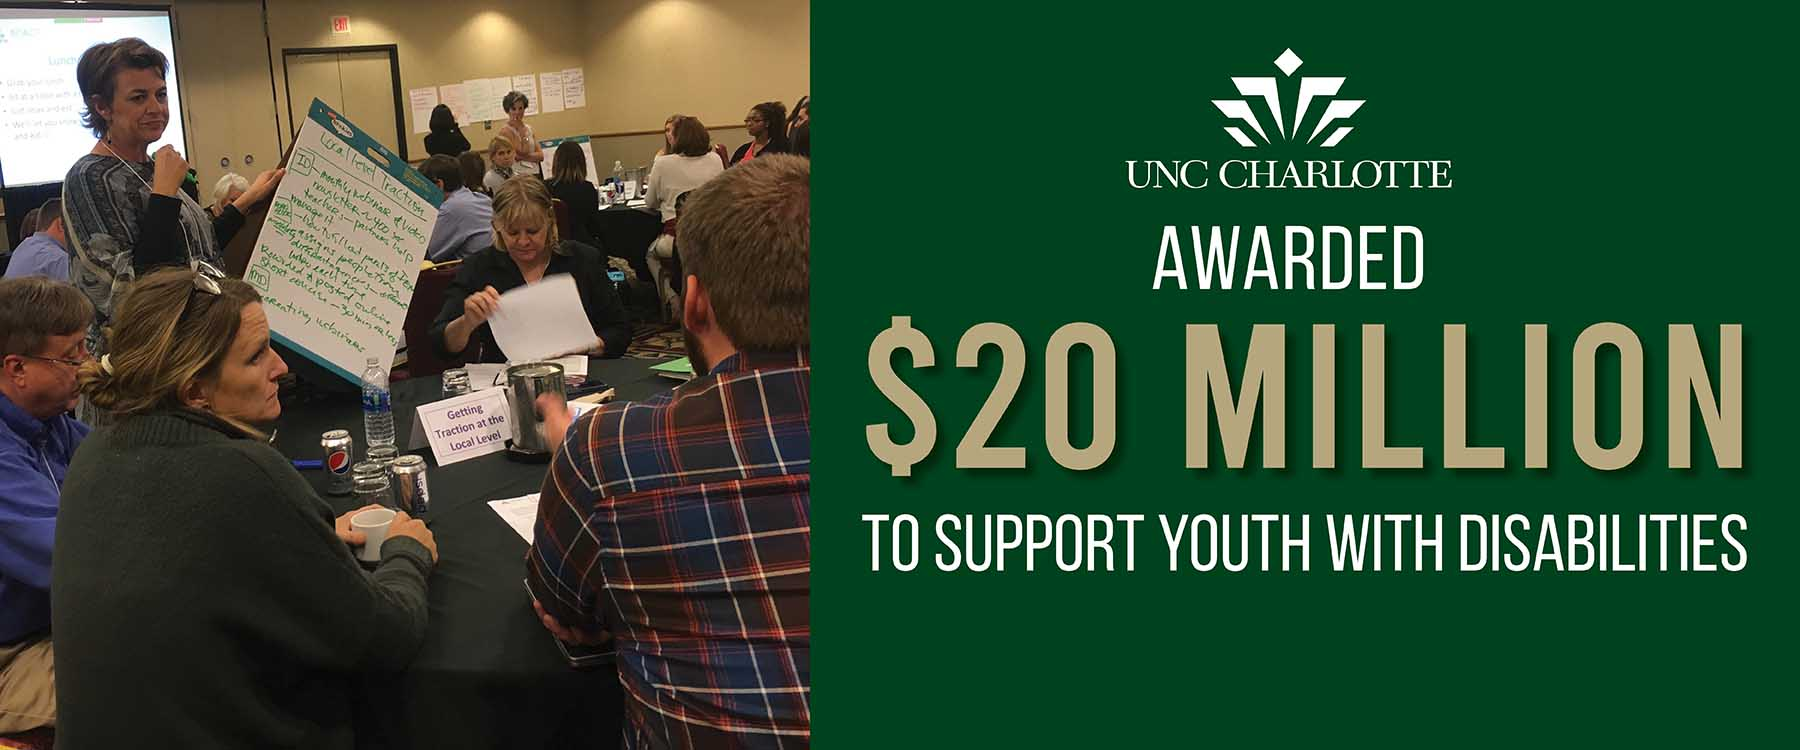 Largest grant in UNC Charlotte history expands National Center for Youth with Disabilities